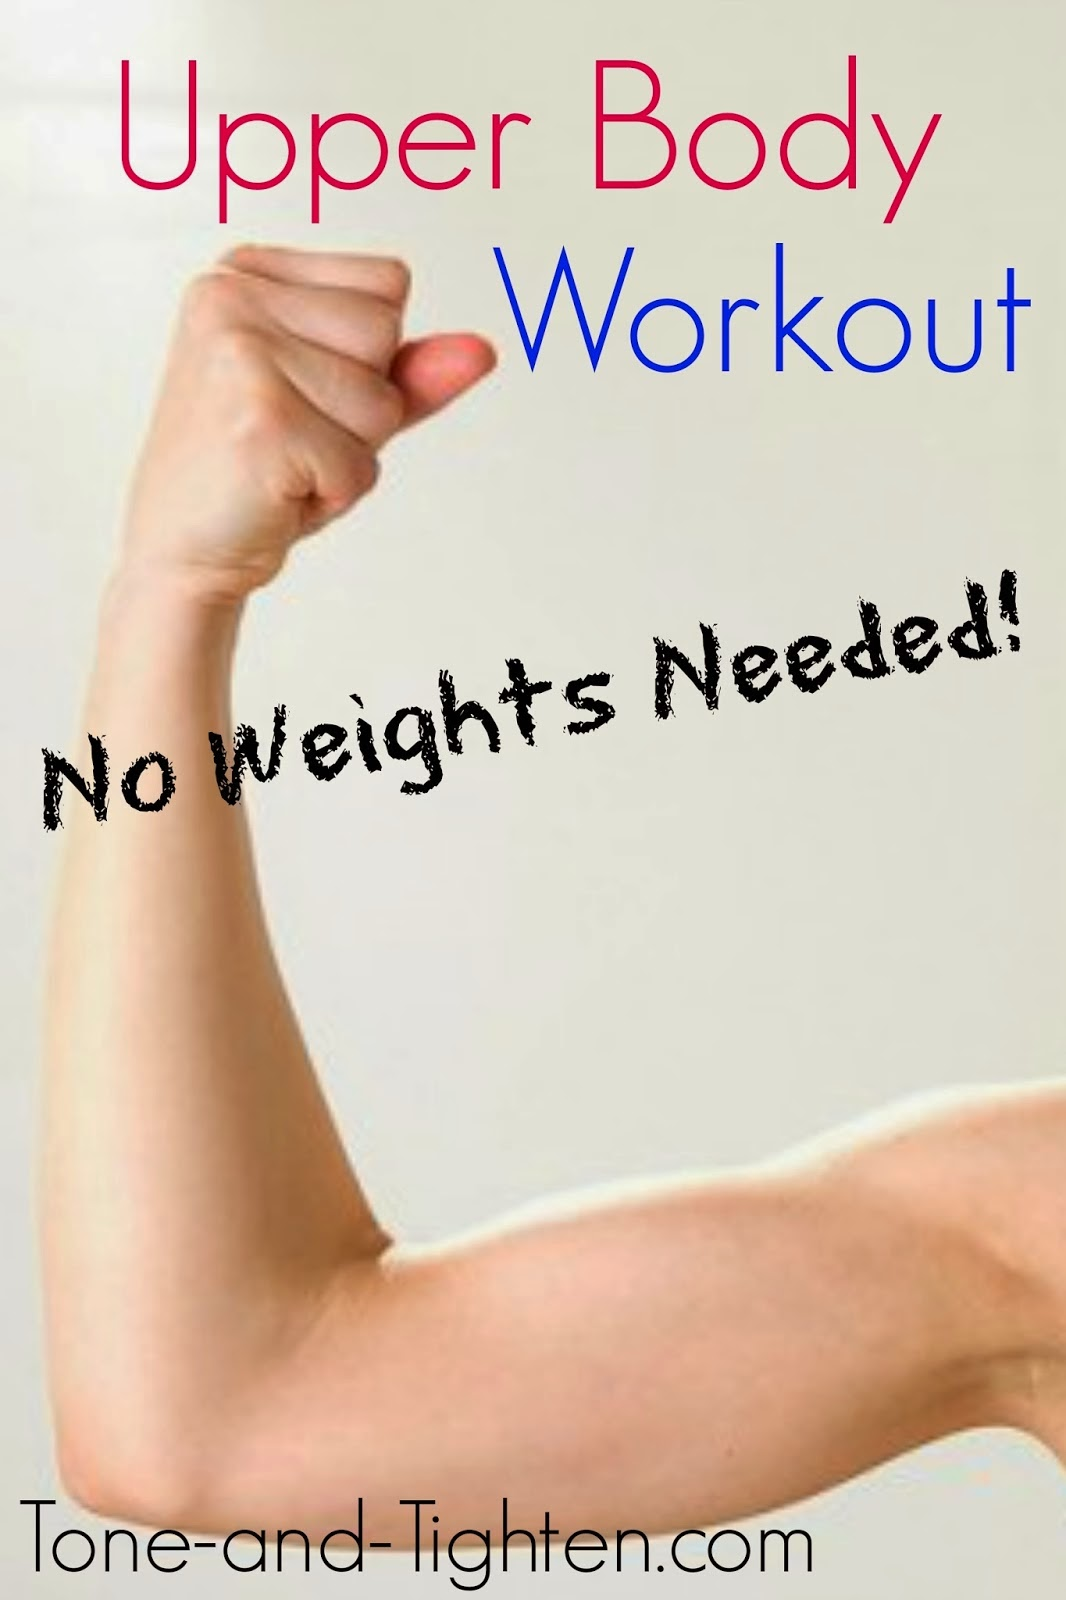 https://tone-and-tighten.com/2014/01/upper-body-workout-without-weights.html